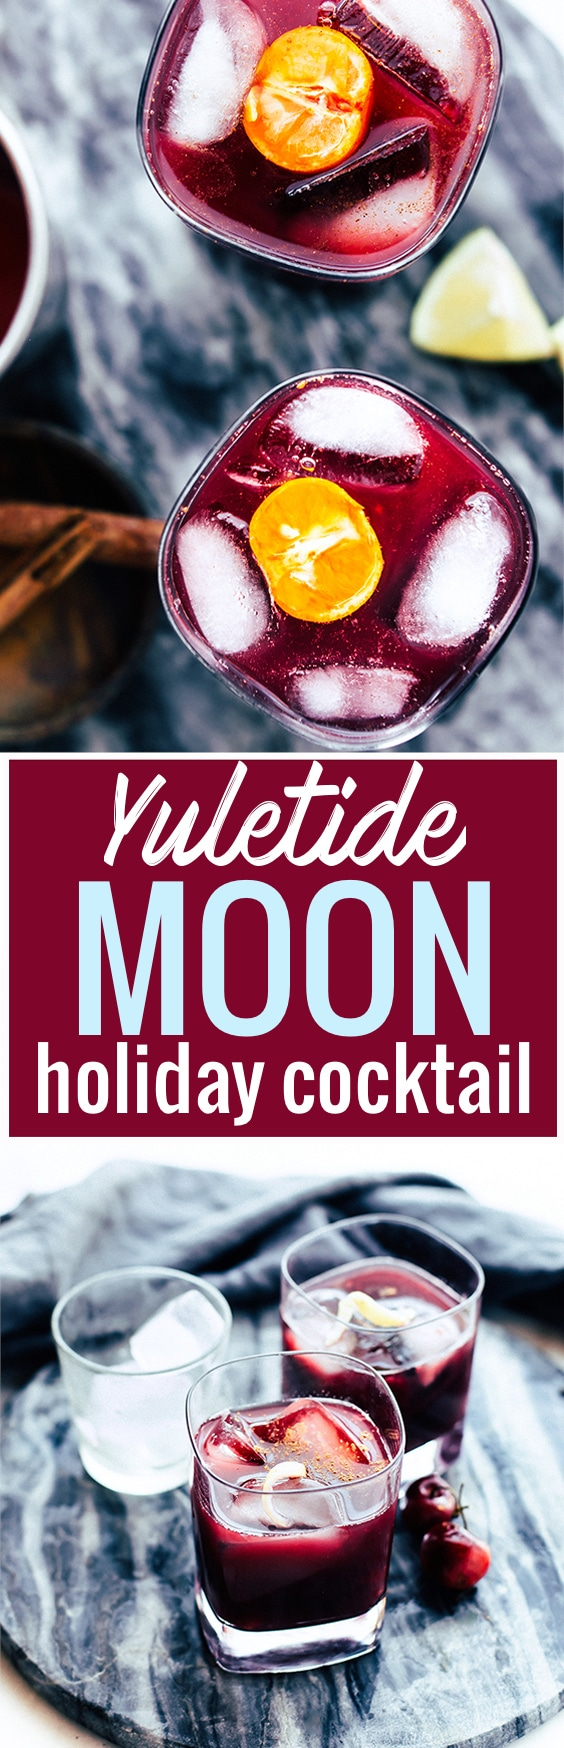 A festive red holiday cocktail recipe to spice up your party and gatherings! Yuletide Moon is a red wine (Merlot) and bourbon holiday cocktail in an old fashioned glass. Made with cherries, spices, and a bit of maple on the rocks. Tis DIVINE! www.cottercrunch.com @cottercrunch Vegan and Gluten free friendly.